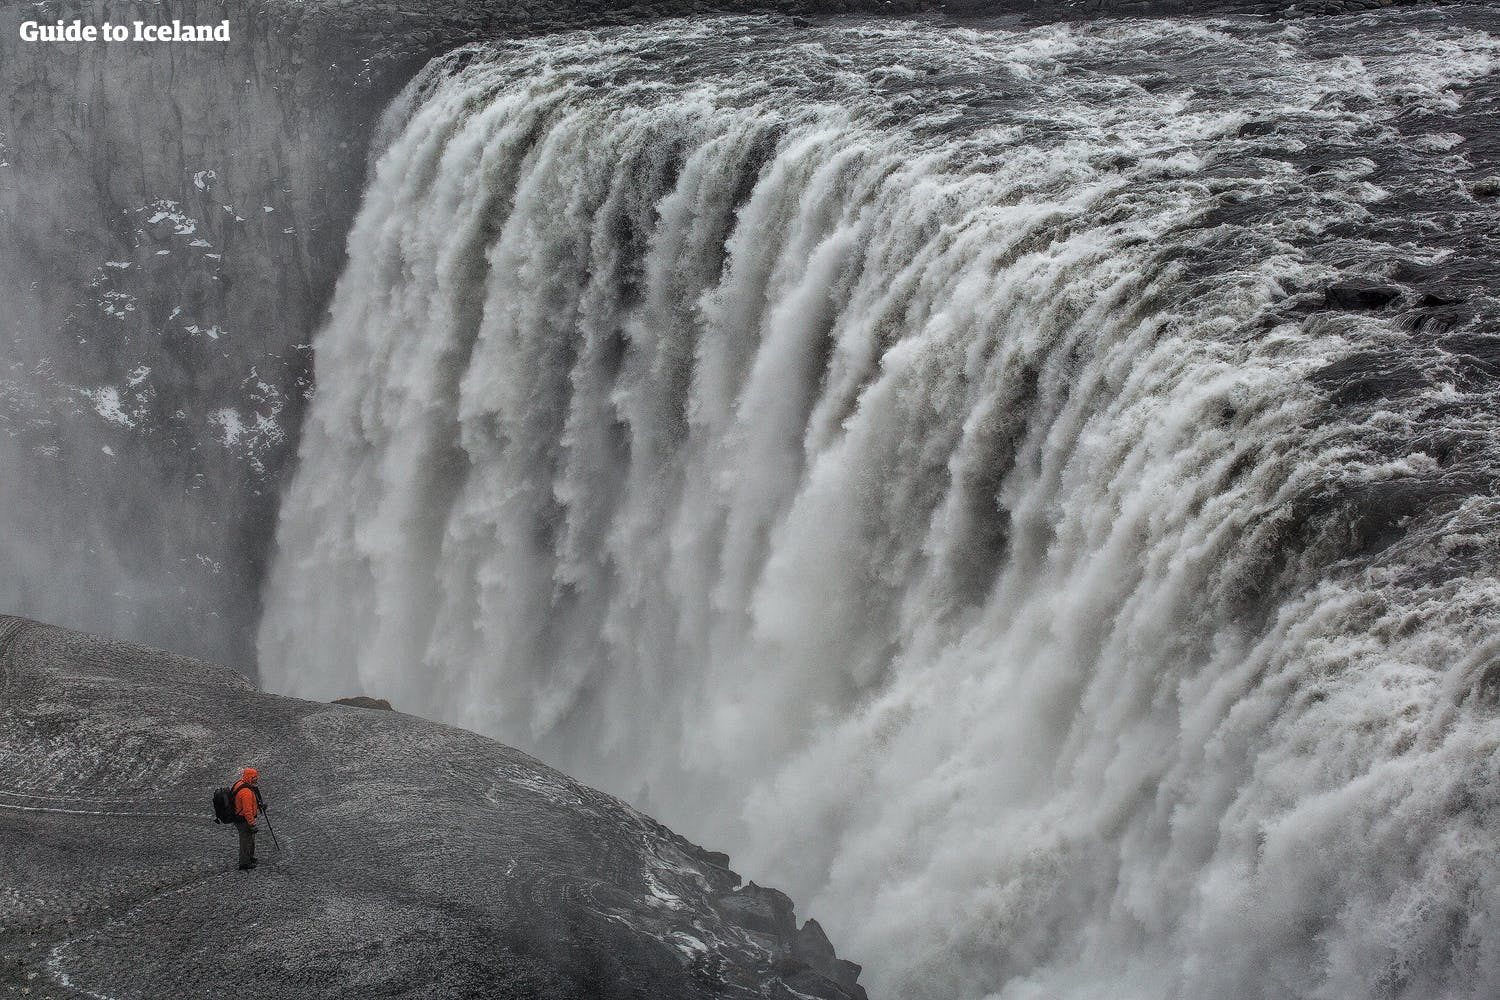 Dettifoss Waterfall in North Iceland is reputed to be the most powerful waterfall in all of Europe.